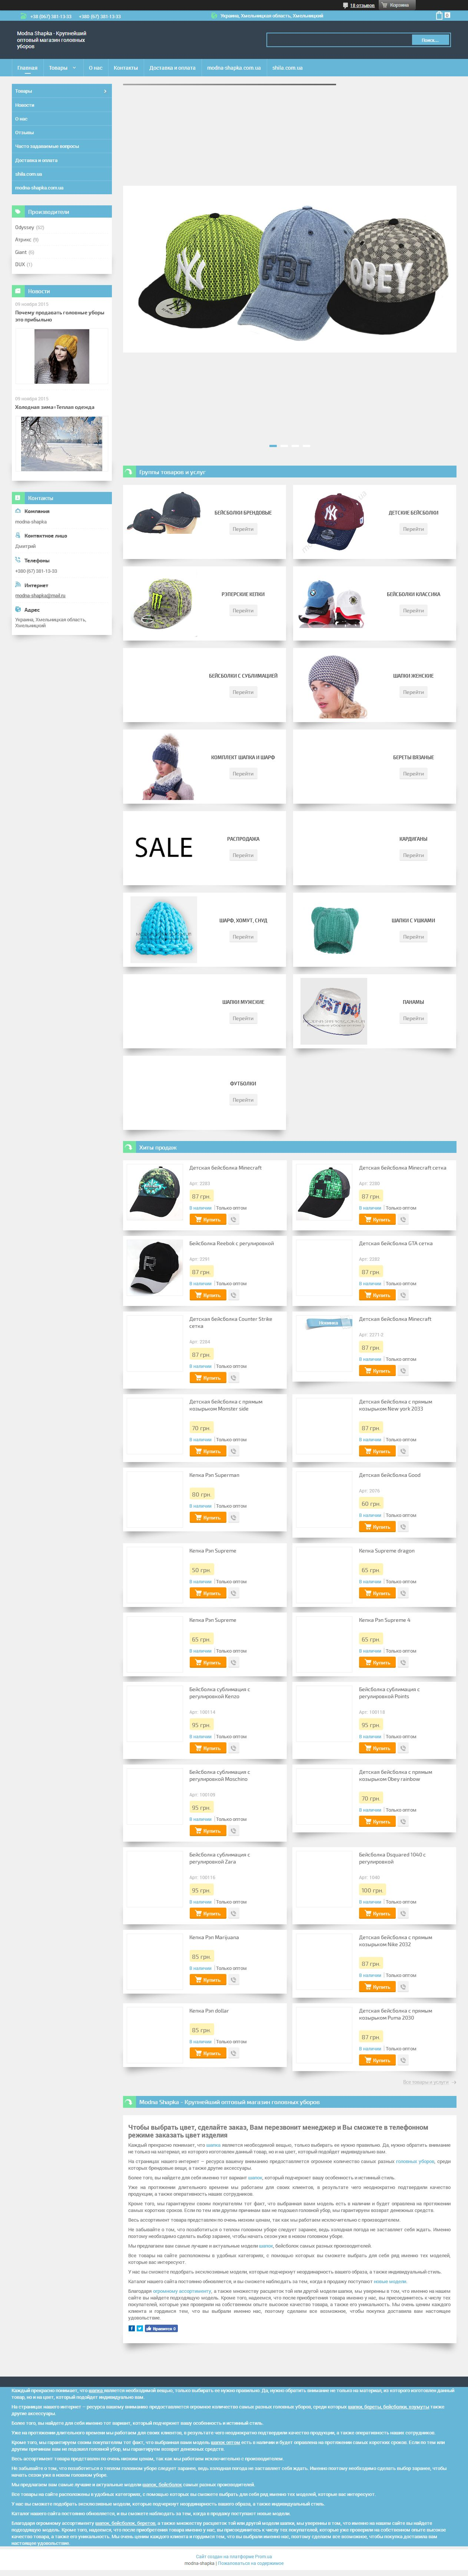 Creation site development, promotion, site promotion, contextual advertising. Advertising agency internet marketing. Order a website, SEO optimization, SEO promotion, creation of an online store, advertising on the Internet.